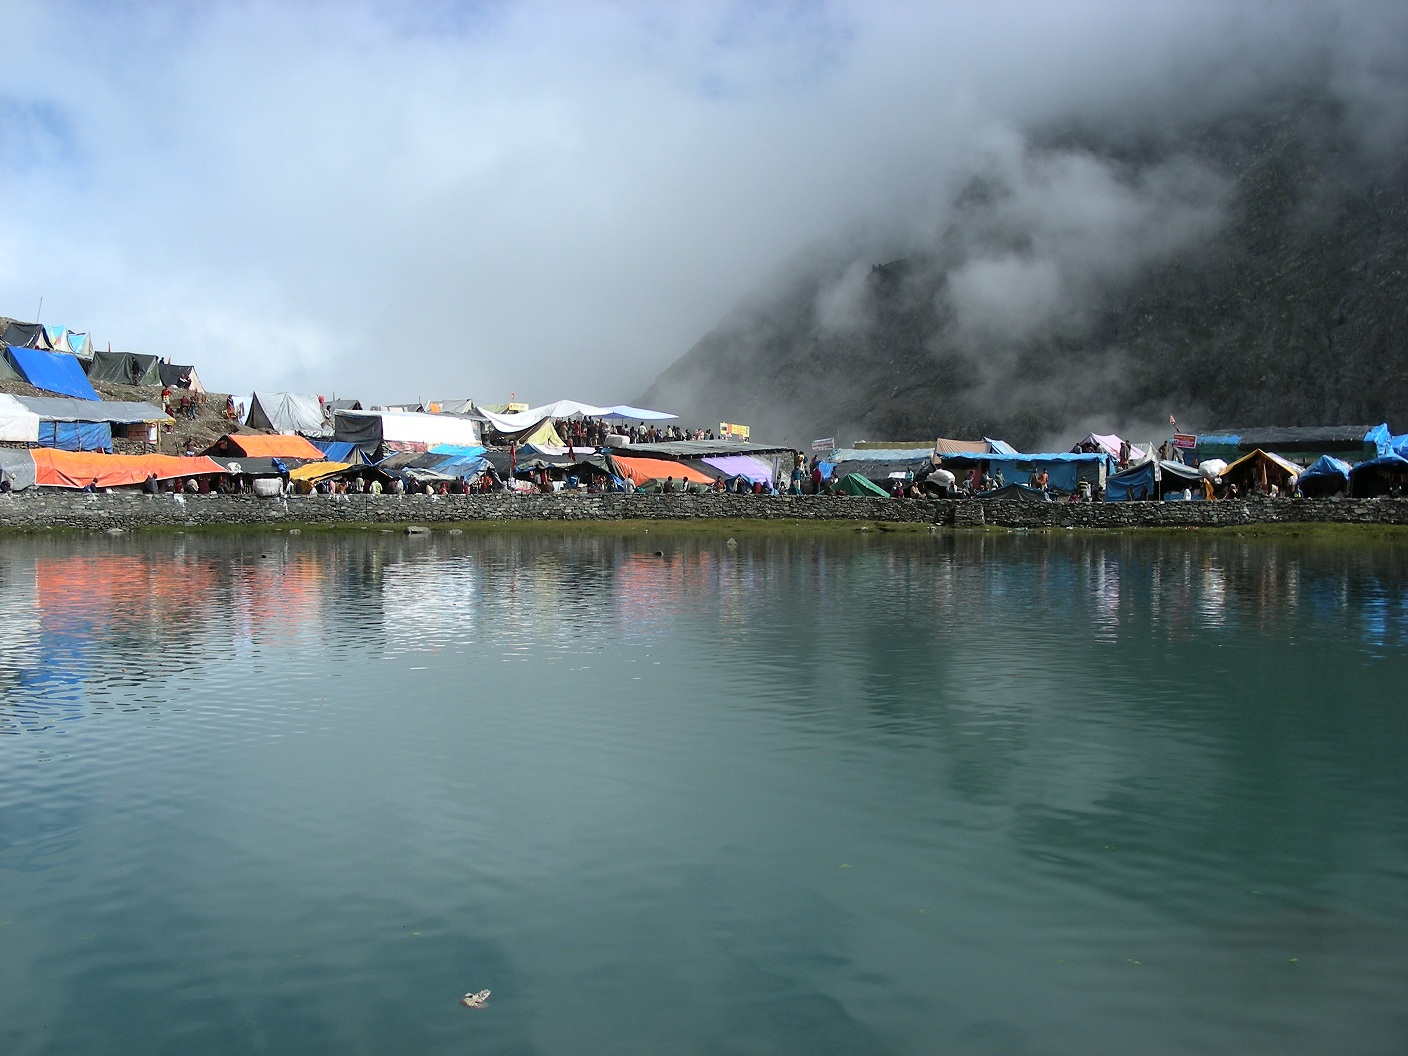 Lake Manimahesh in Himachal Pradesh, Religious Pilgrimage Destination in Himalayas